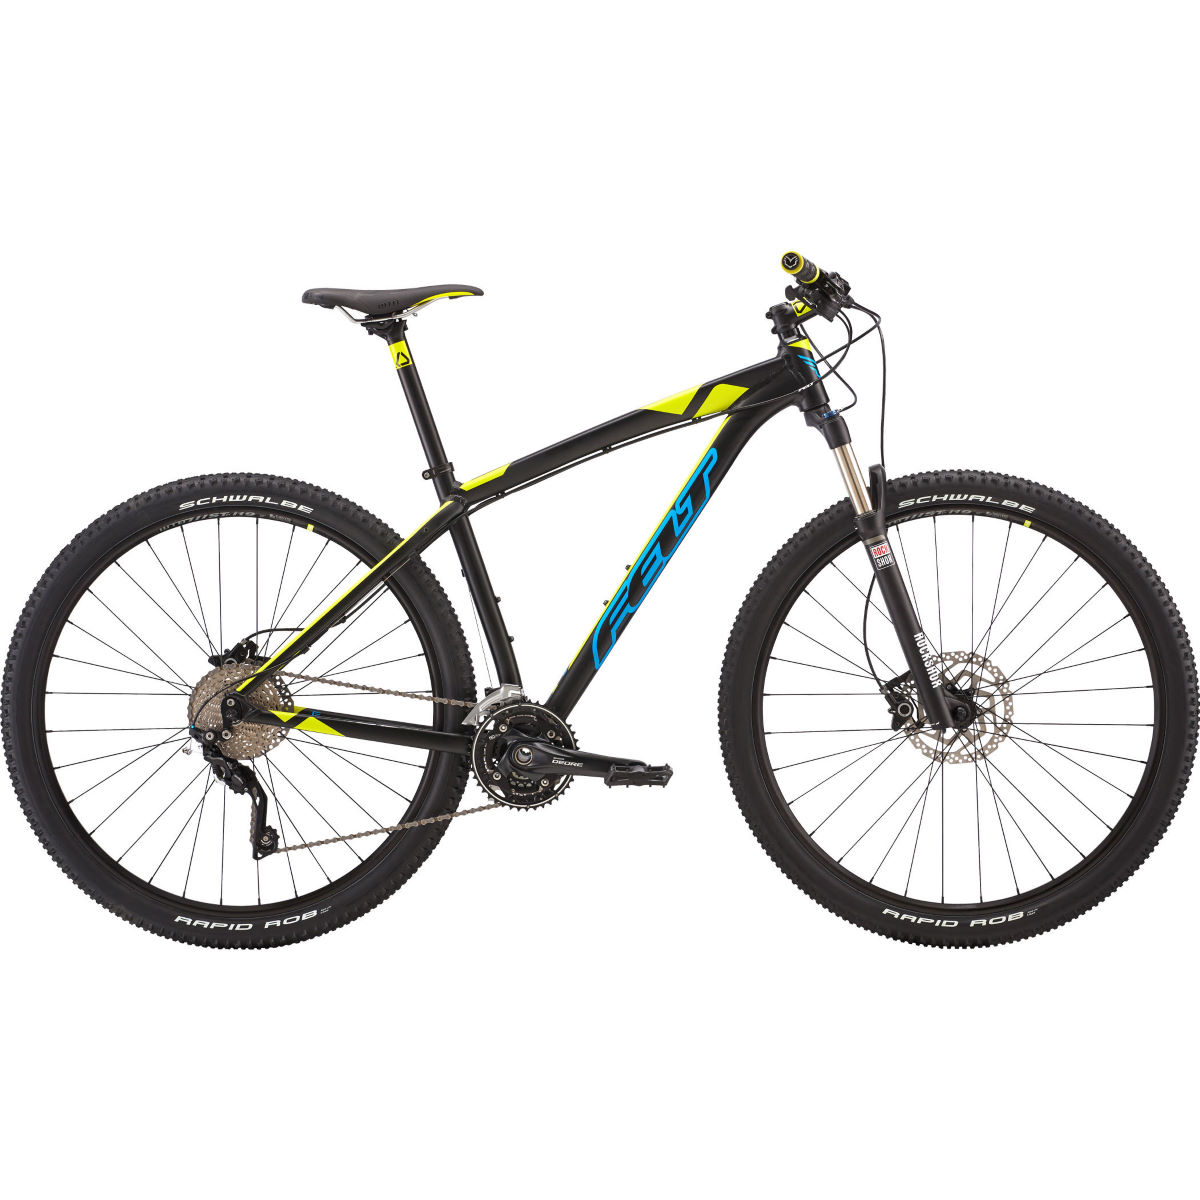 VTT Felt Nine 50 (2017) - 18'' Stock Bike Matte Black/Blue